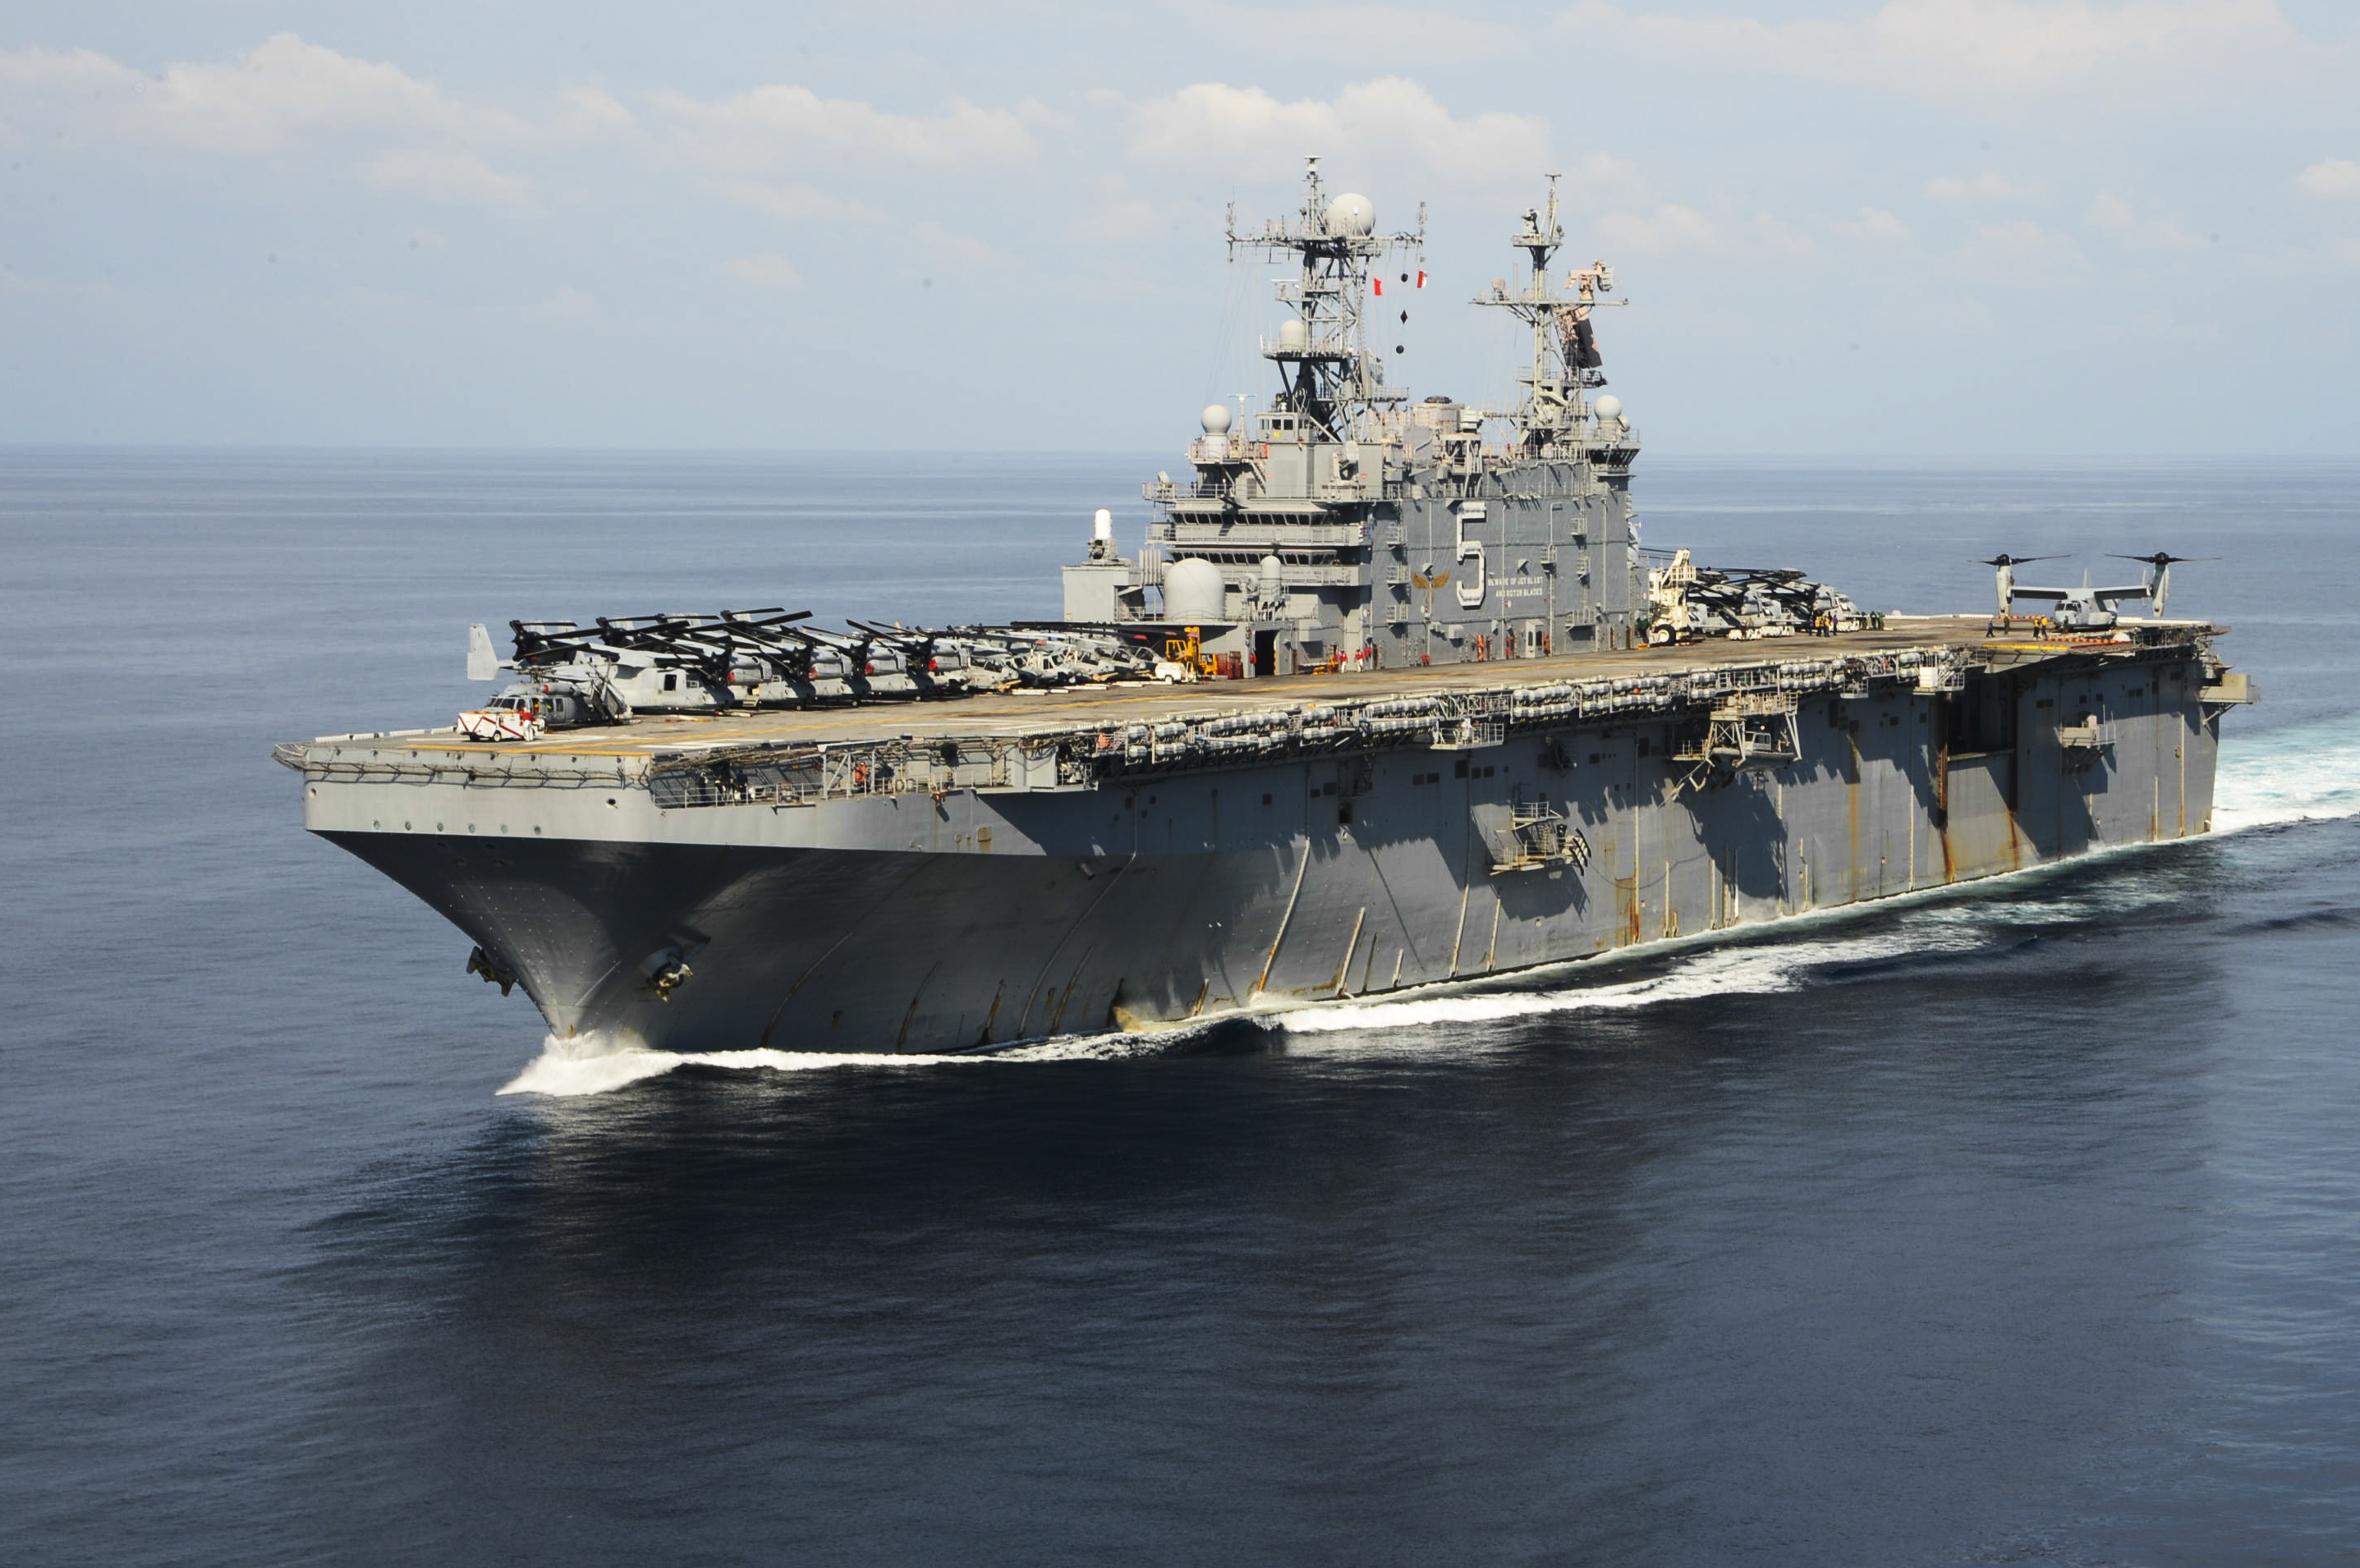 USS Peleliu (LHA 5) is underway in the Philippine Sea in its last 2014 deployment. US Navy Photo